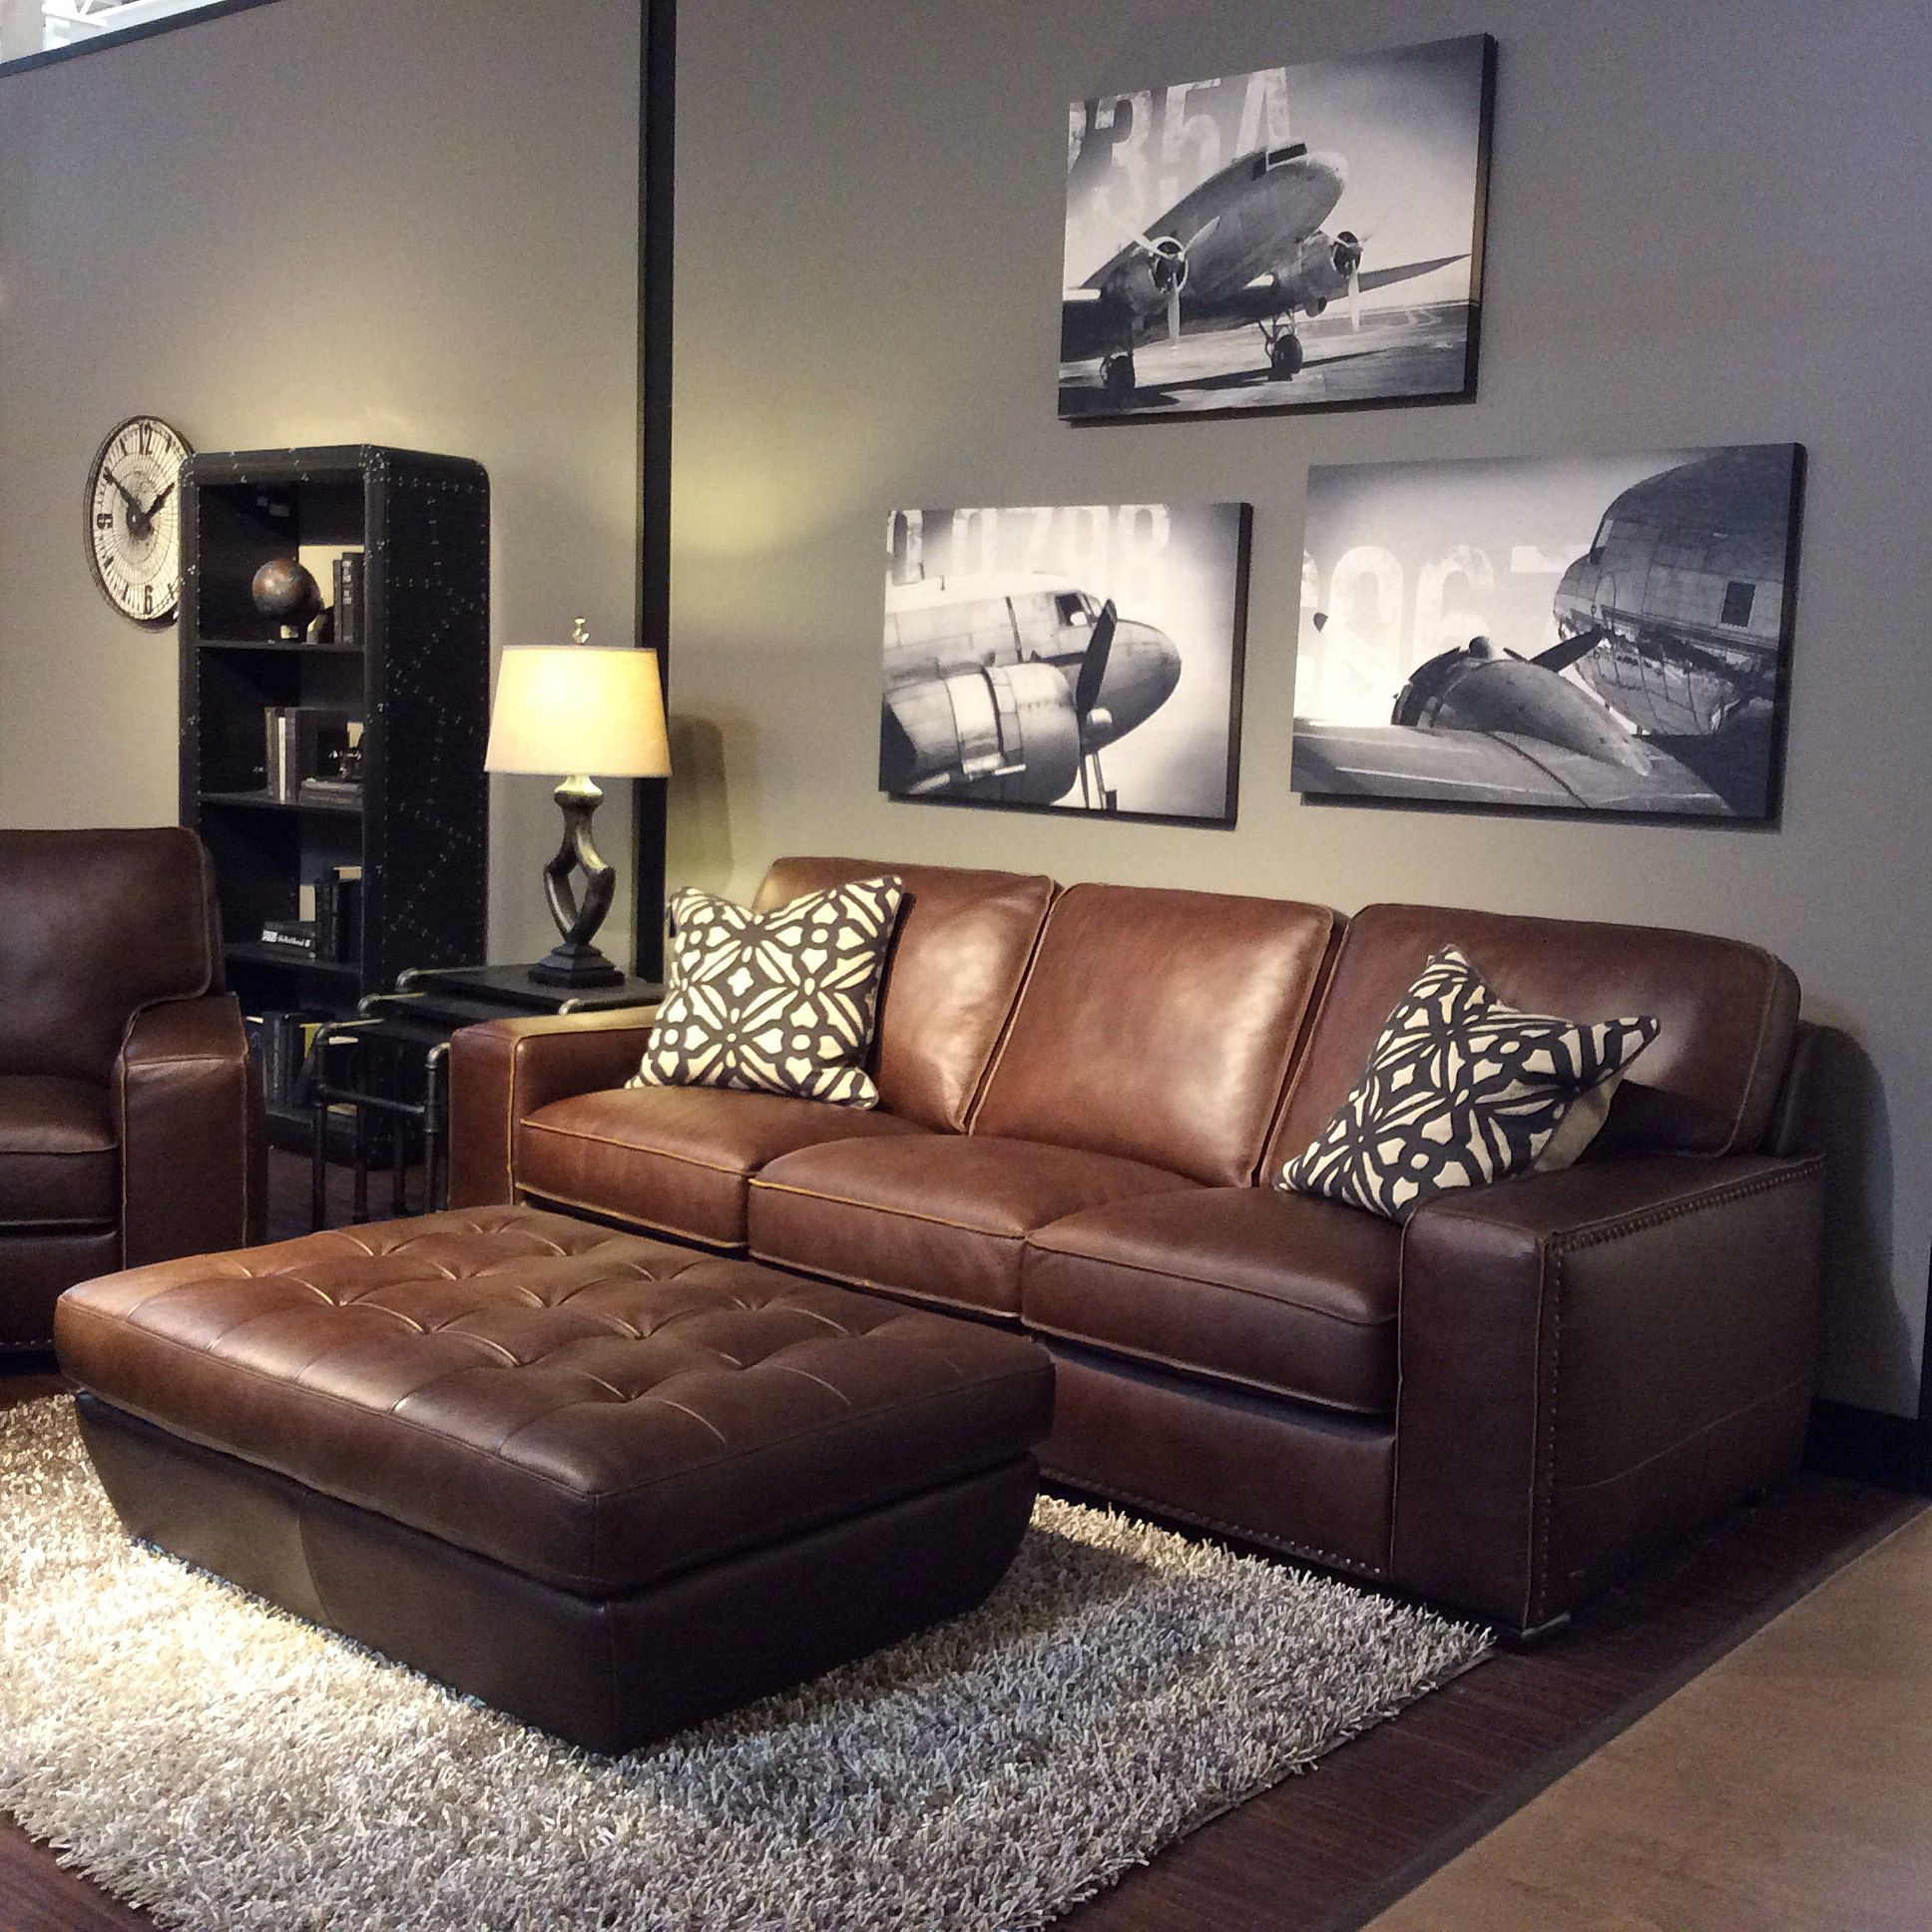 Gray Walls Brown Couch Living Room Ideas With Leather Sofa: Family Room With Warm Gray Walls, Black And White Art